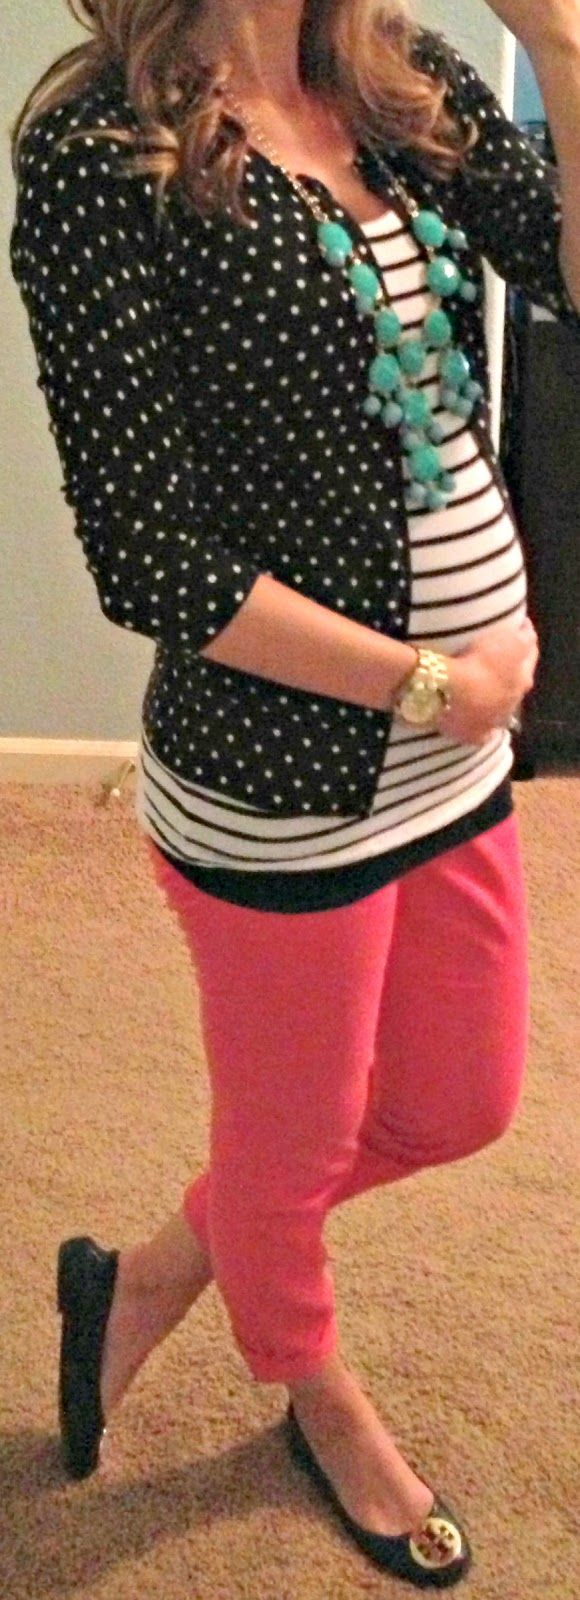 While I don't particularly like polka dots, I like the mixed patterns and love…